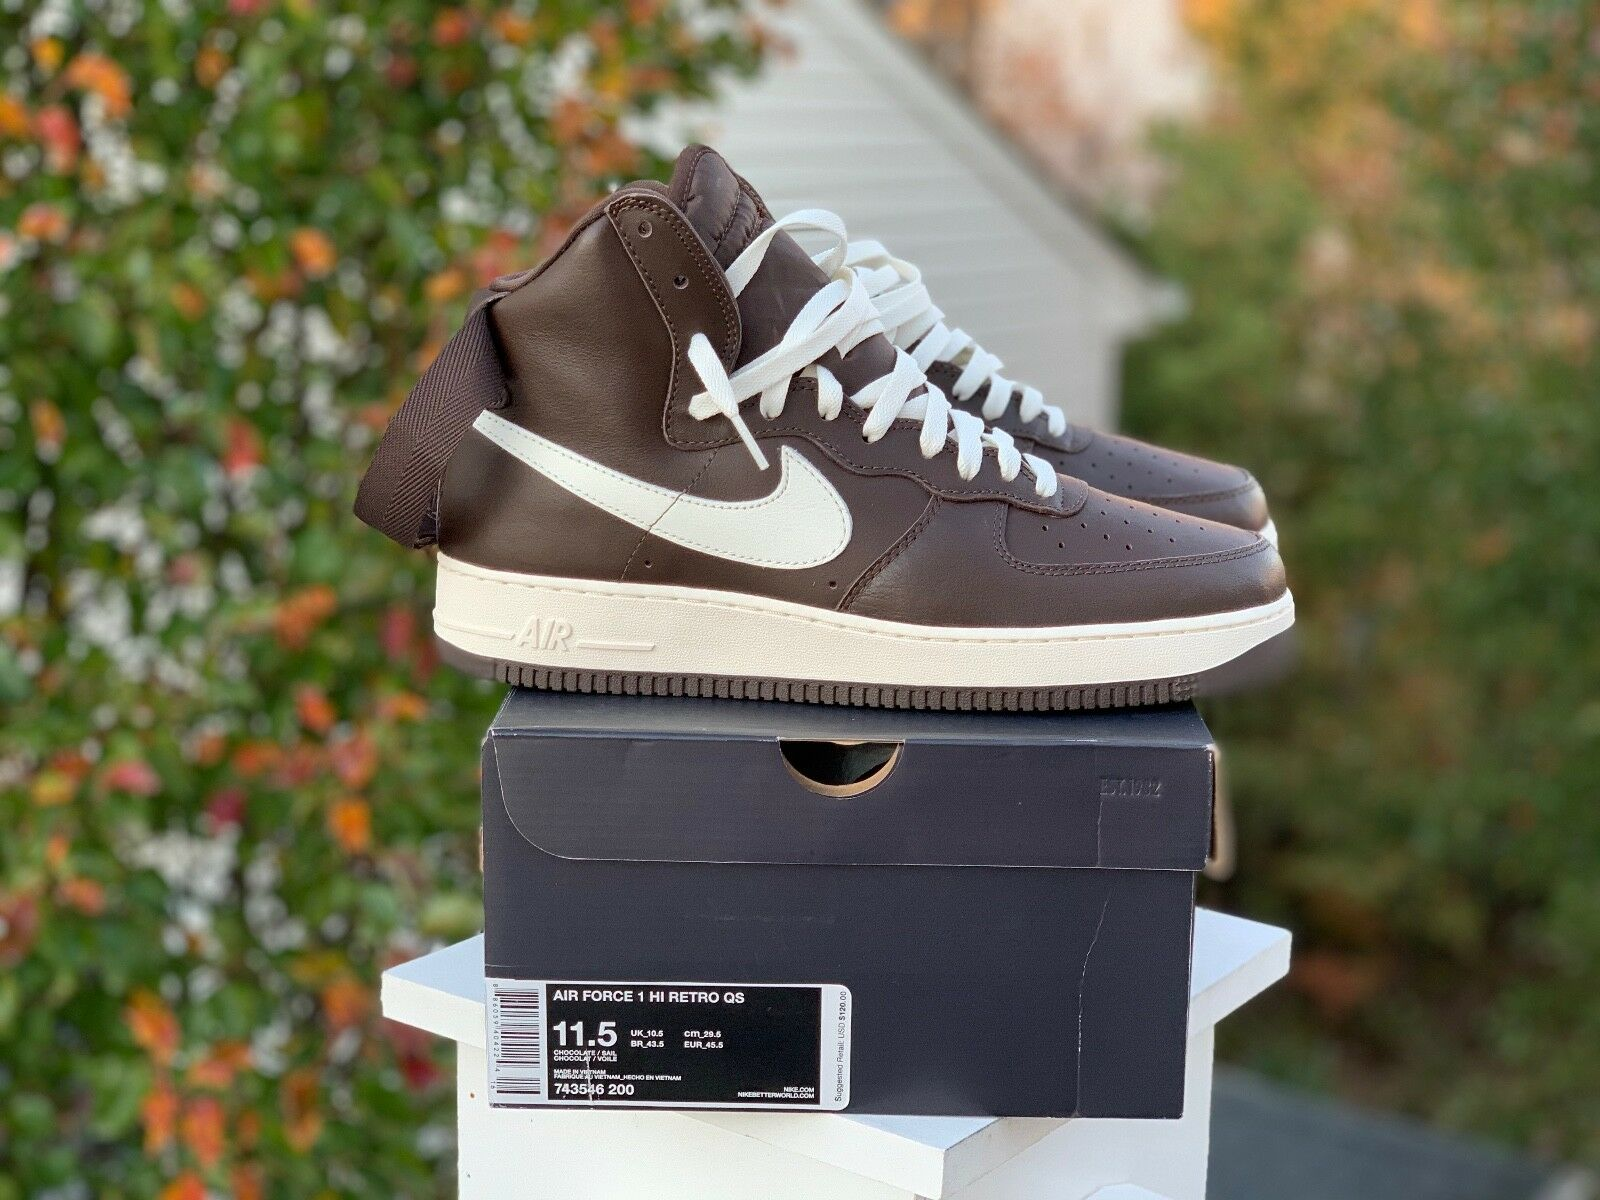 Nike Air Force 1 One AF1 High Chocolate Brown size 11.5 New